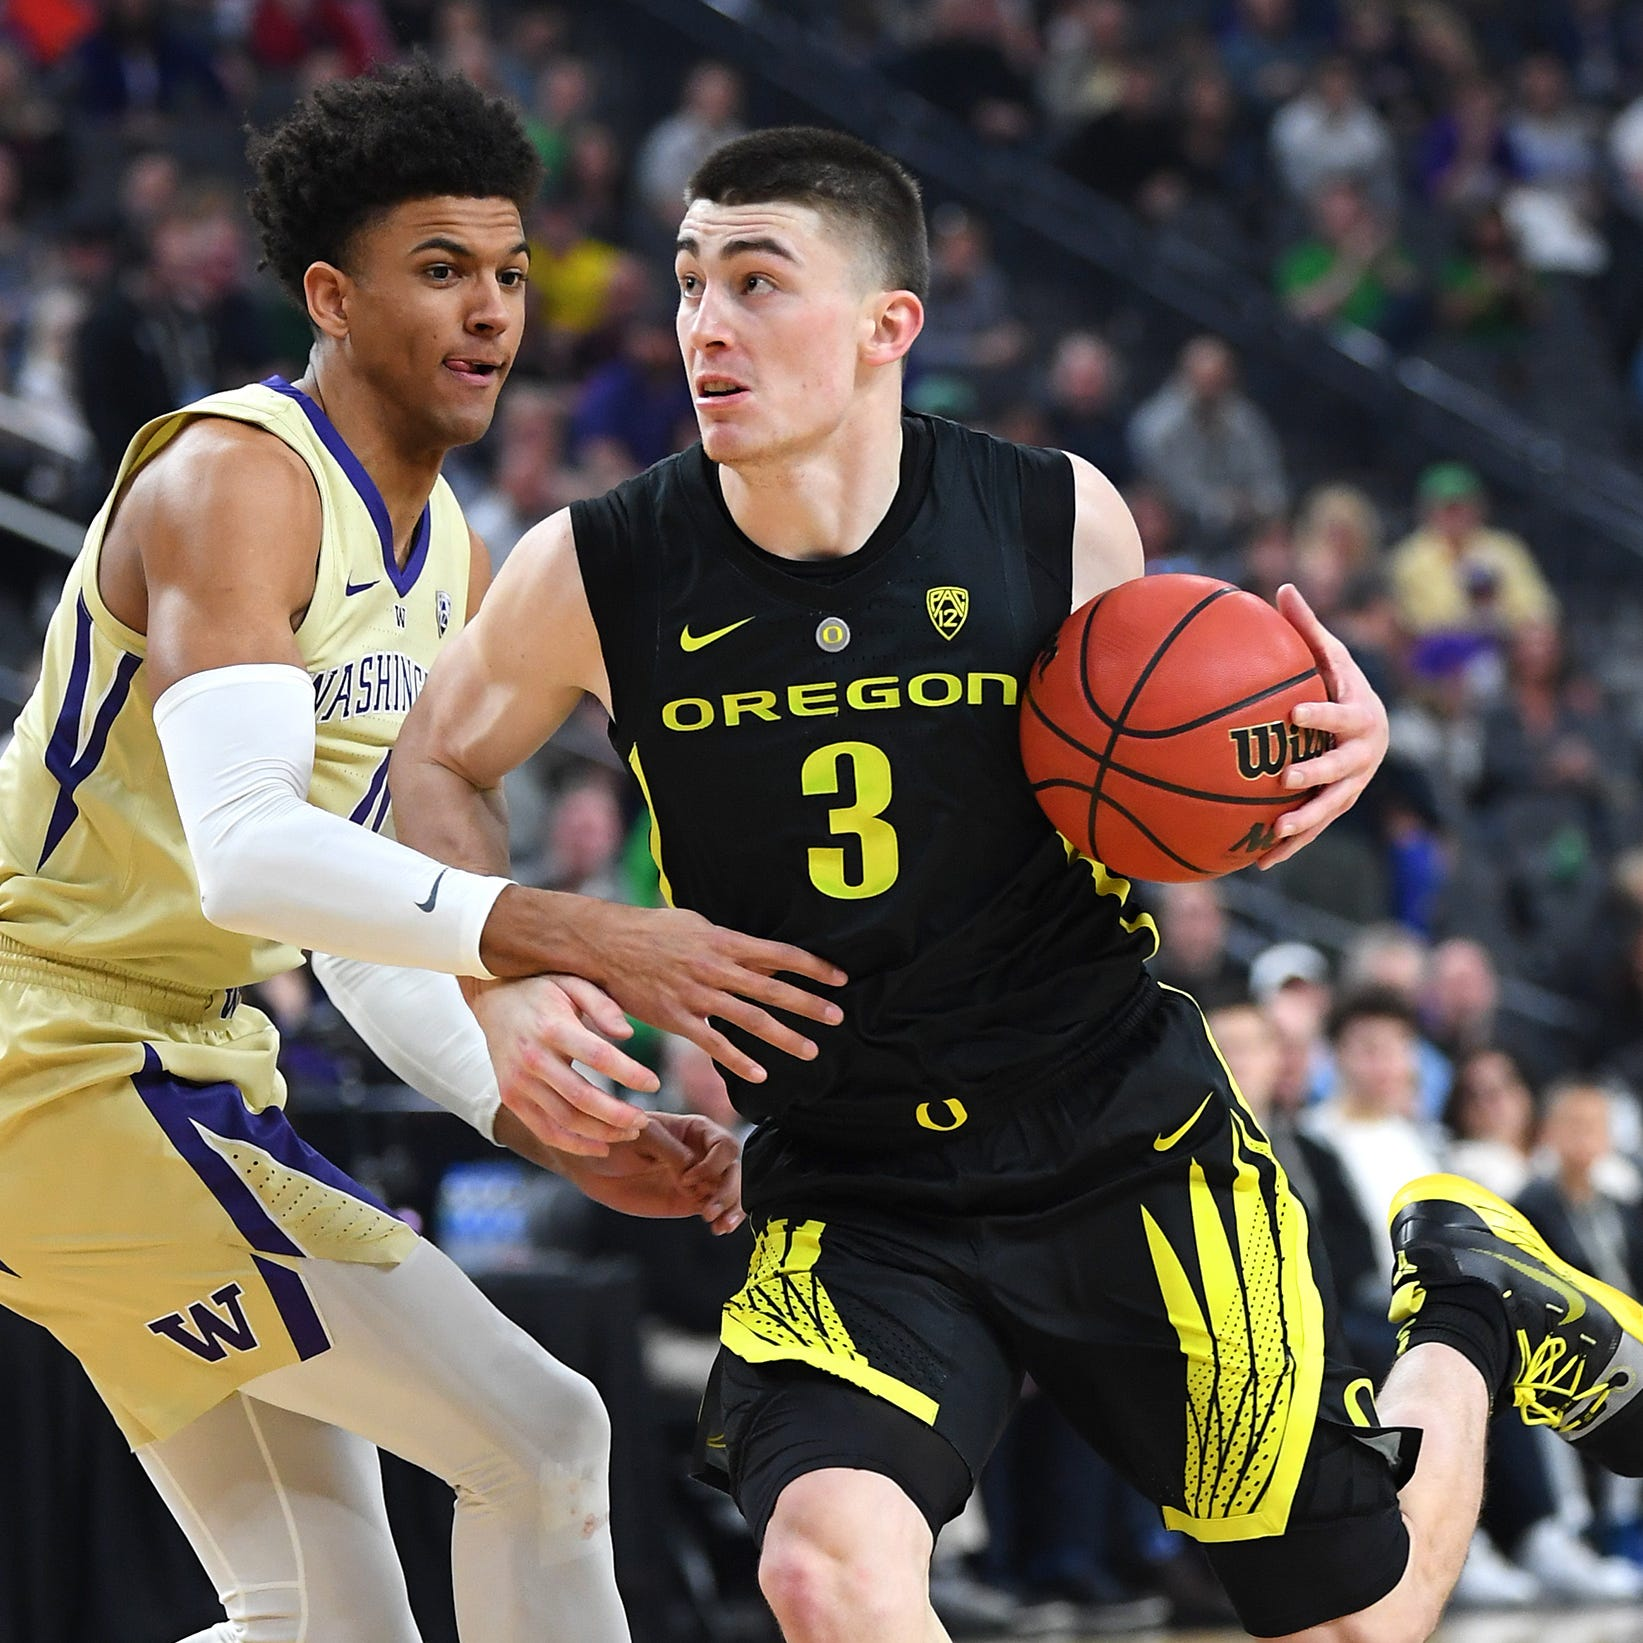 Wisconsin coveted Oregon's Payton Pritchard. Now they'll have to play against him